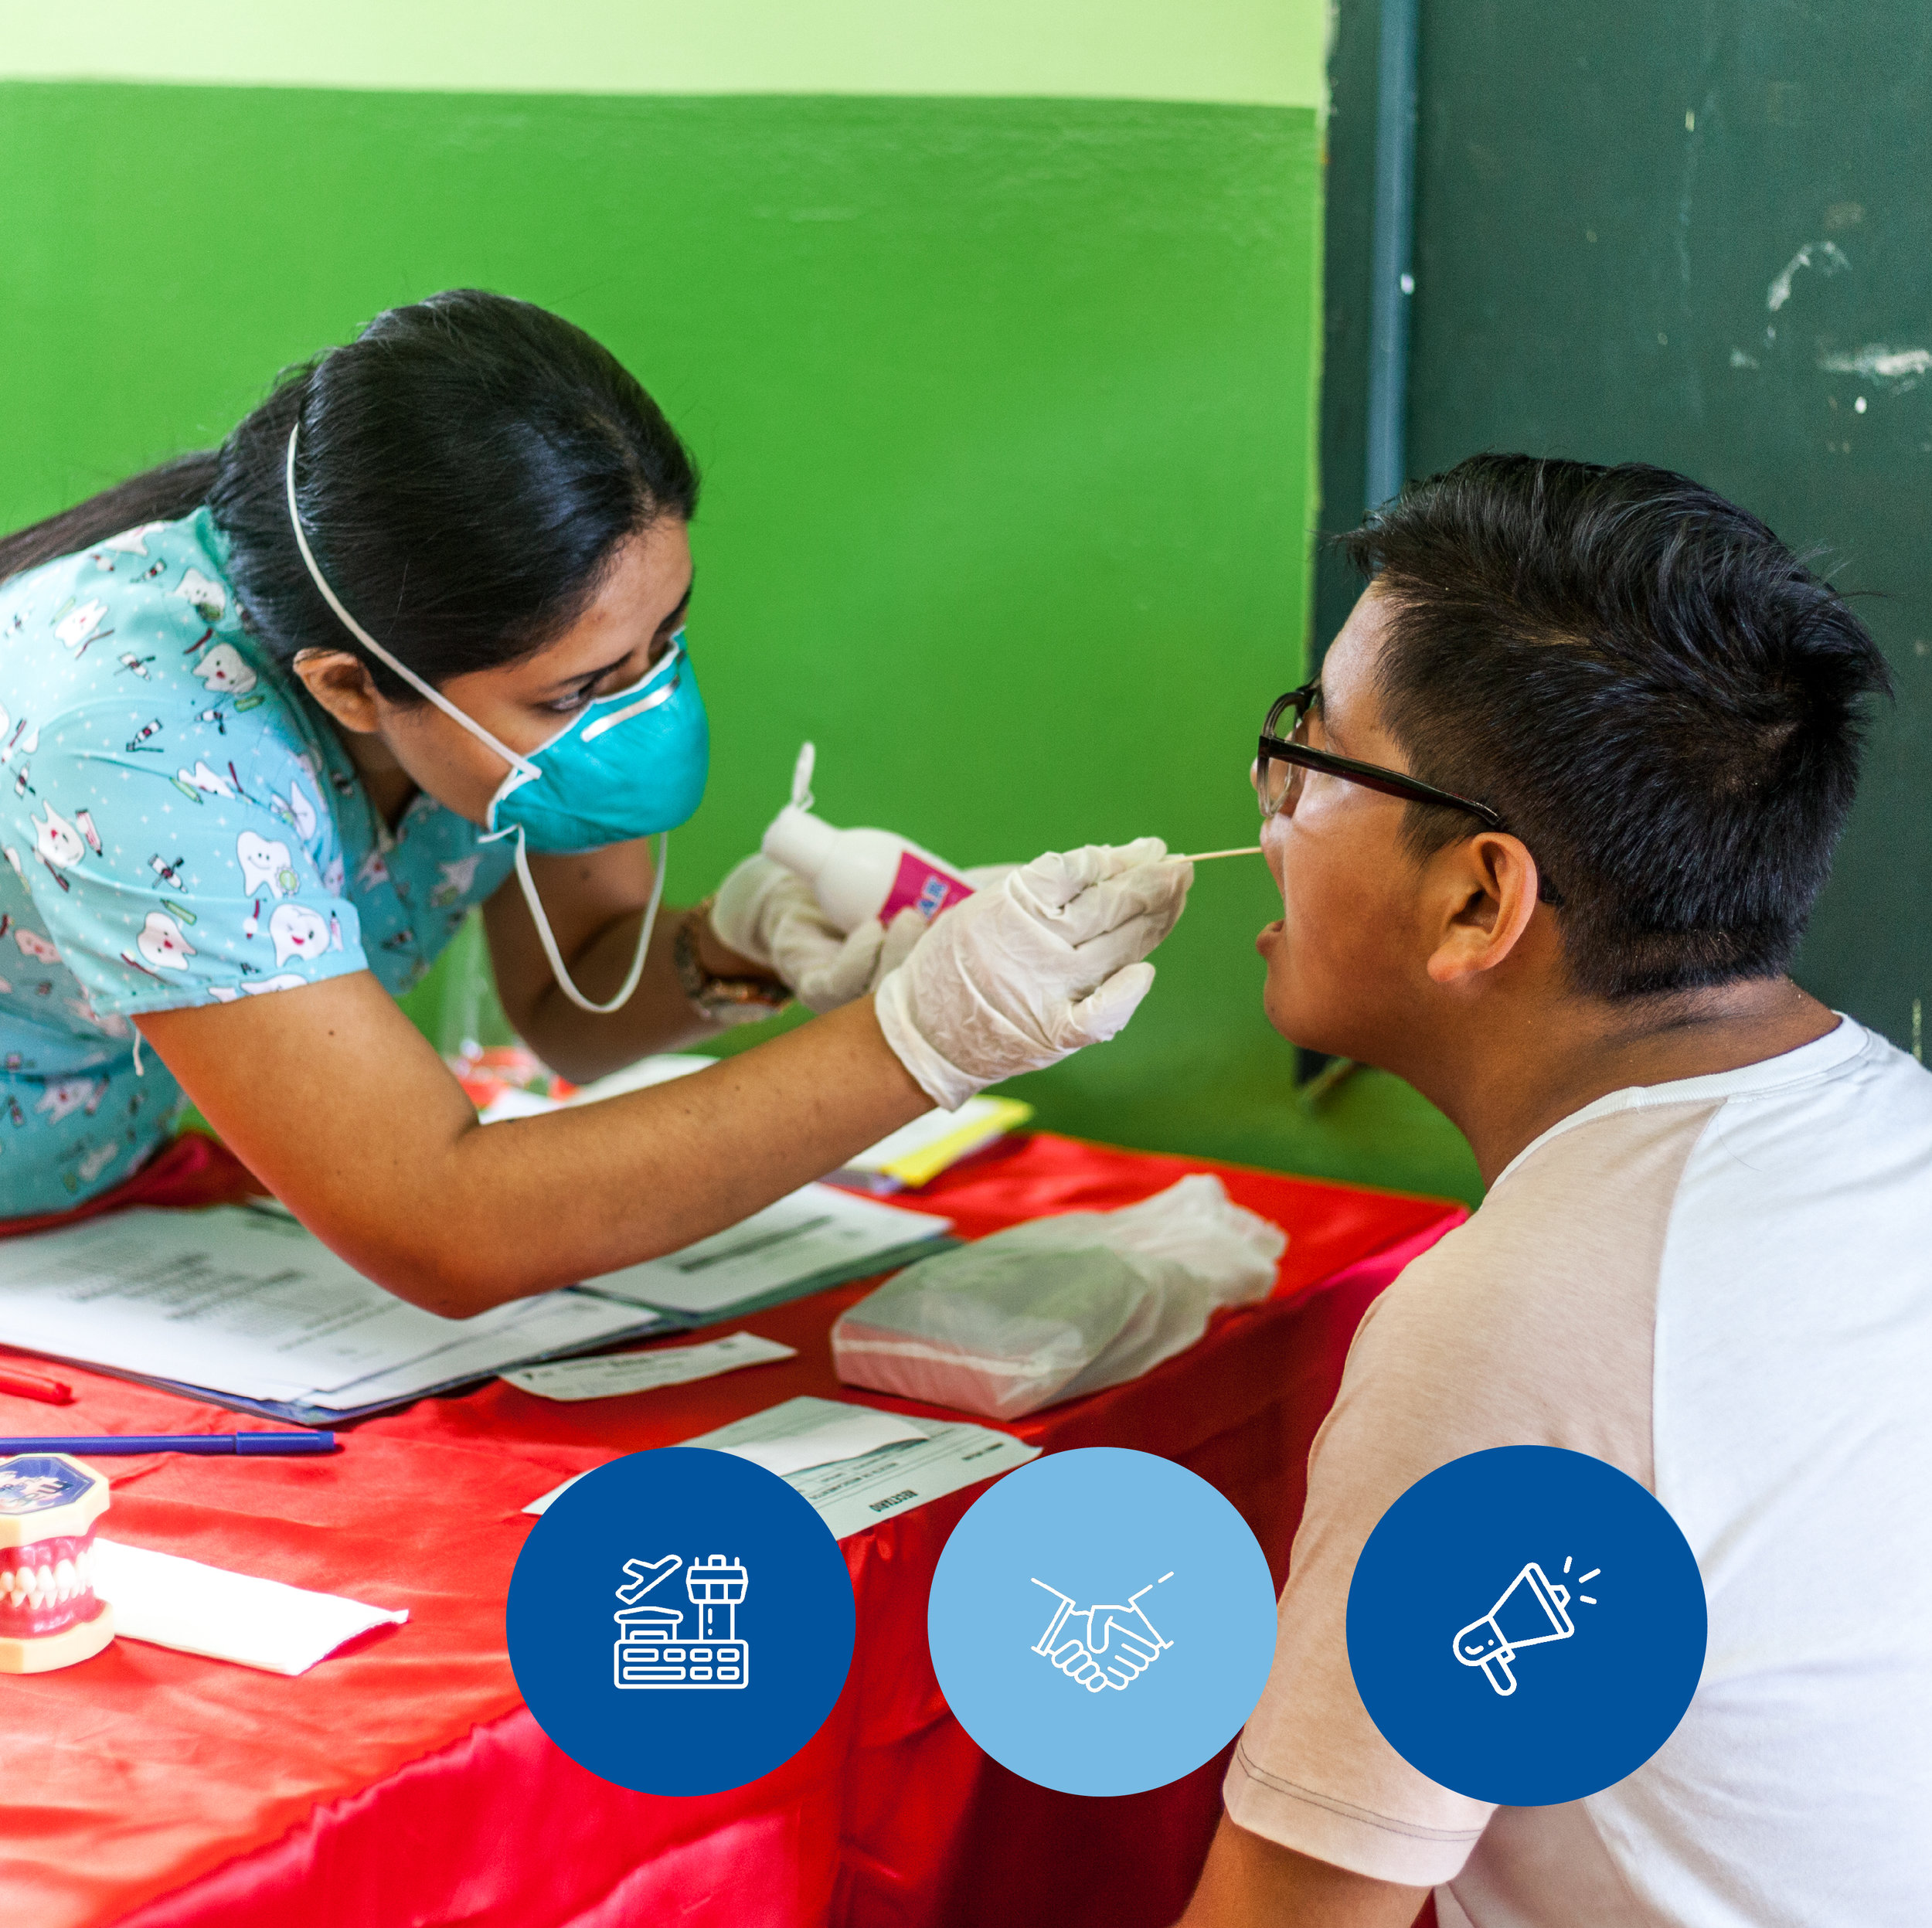 HEALTH CAMPAIGNS - LAP with the support of ADRA, will bring specialties to your locality such as gynecology, otorhinolaryngology, pediatrics, dermatology, dentistry, nutrition, psychology, laboratory, among other.